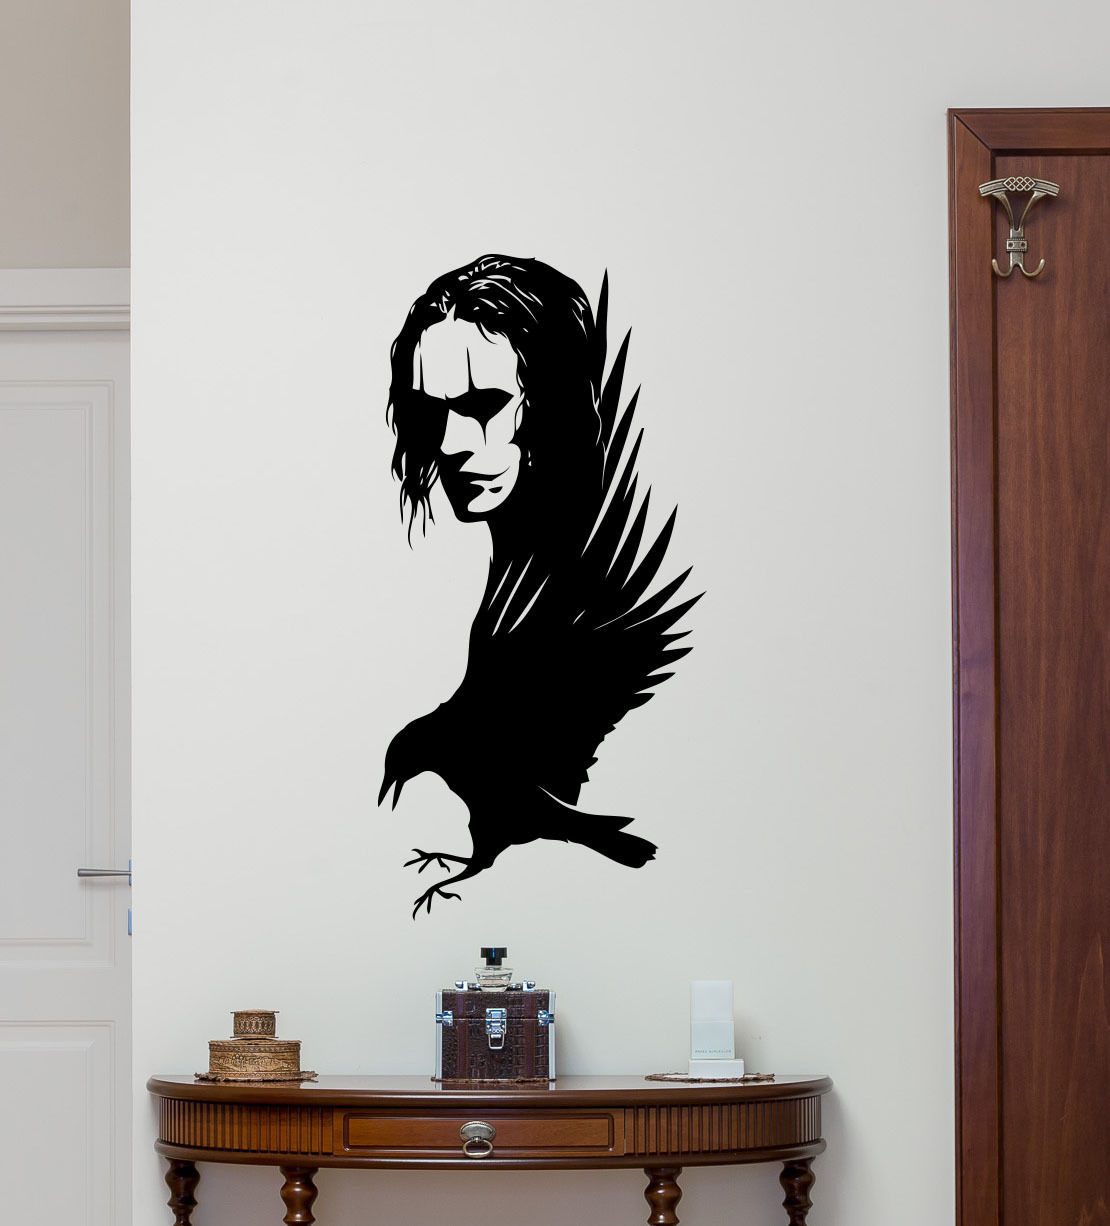 The Crow Wall Decal Brandon Lee Movie Vinyl Sticker Poster Home Decor Art Decorations Living Room Removable Mural E574 gold metal duvar saati